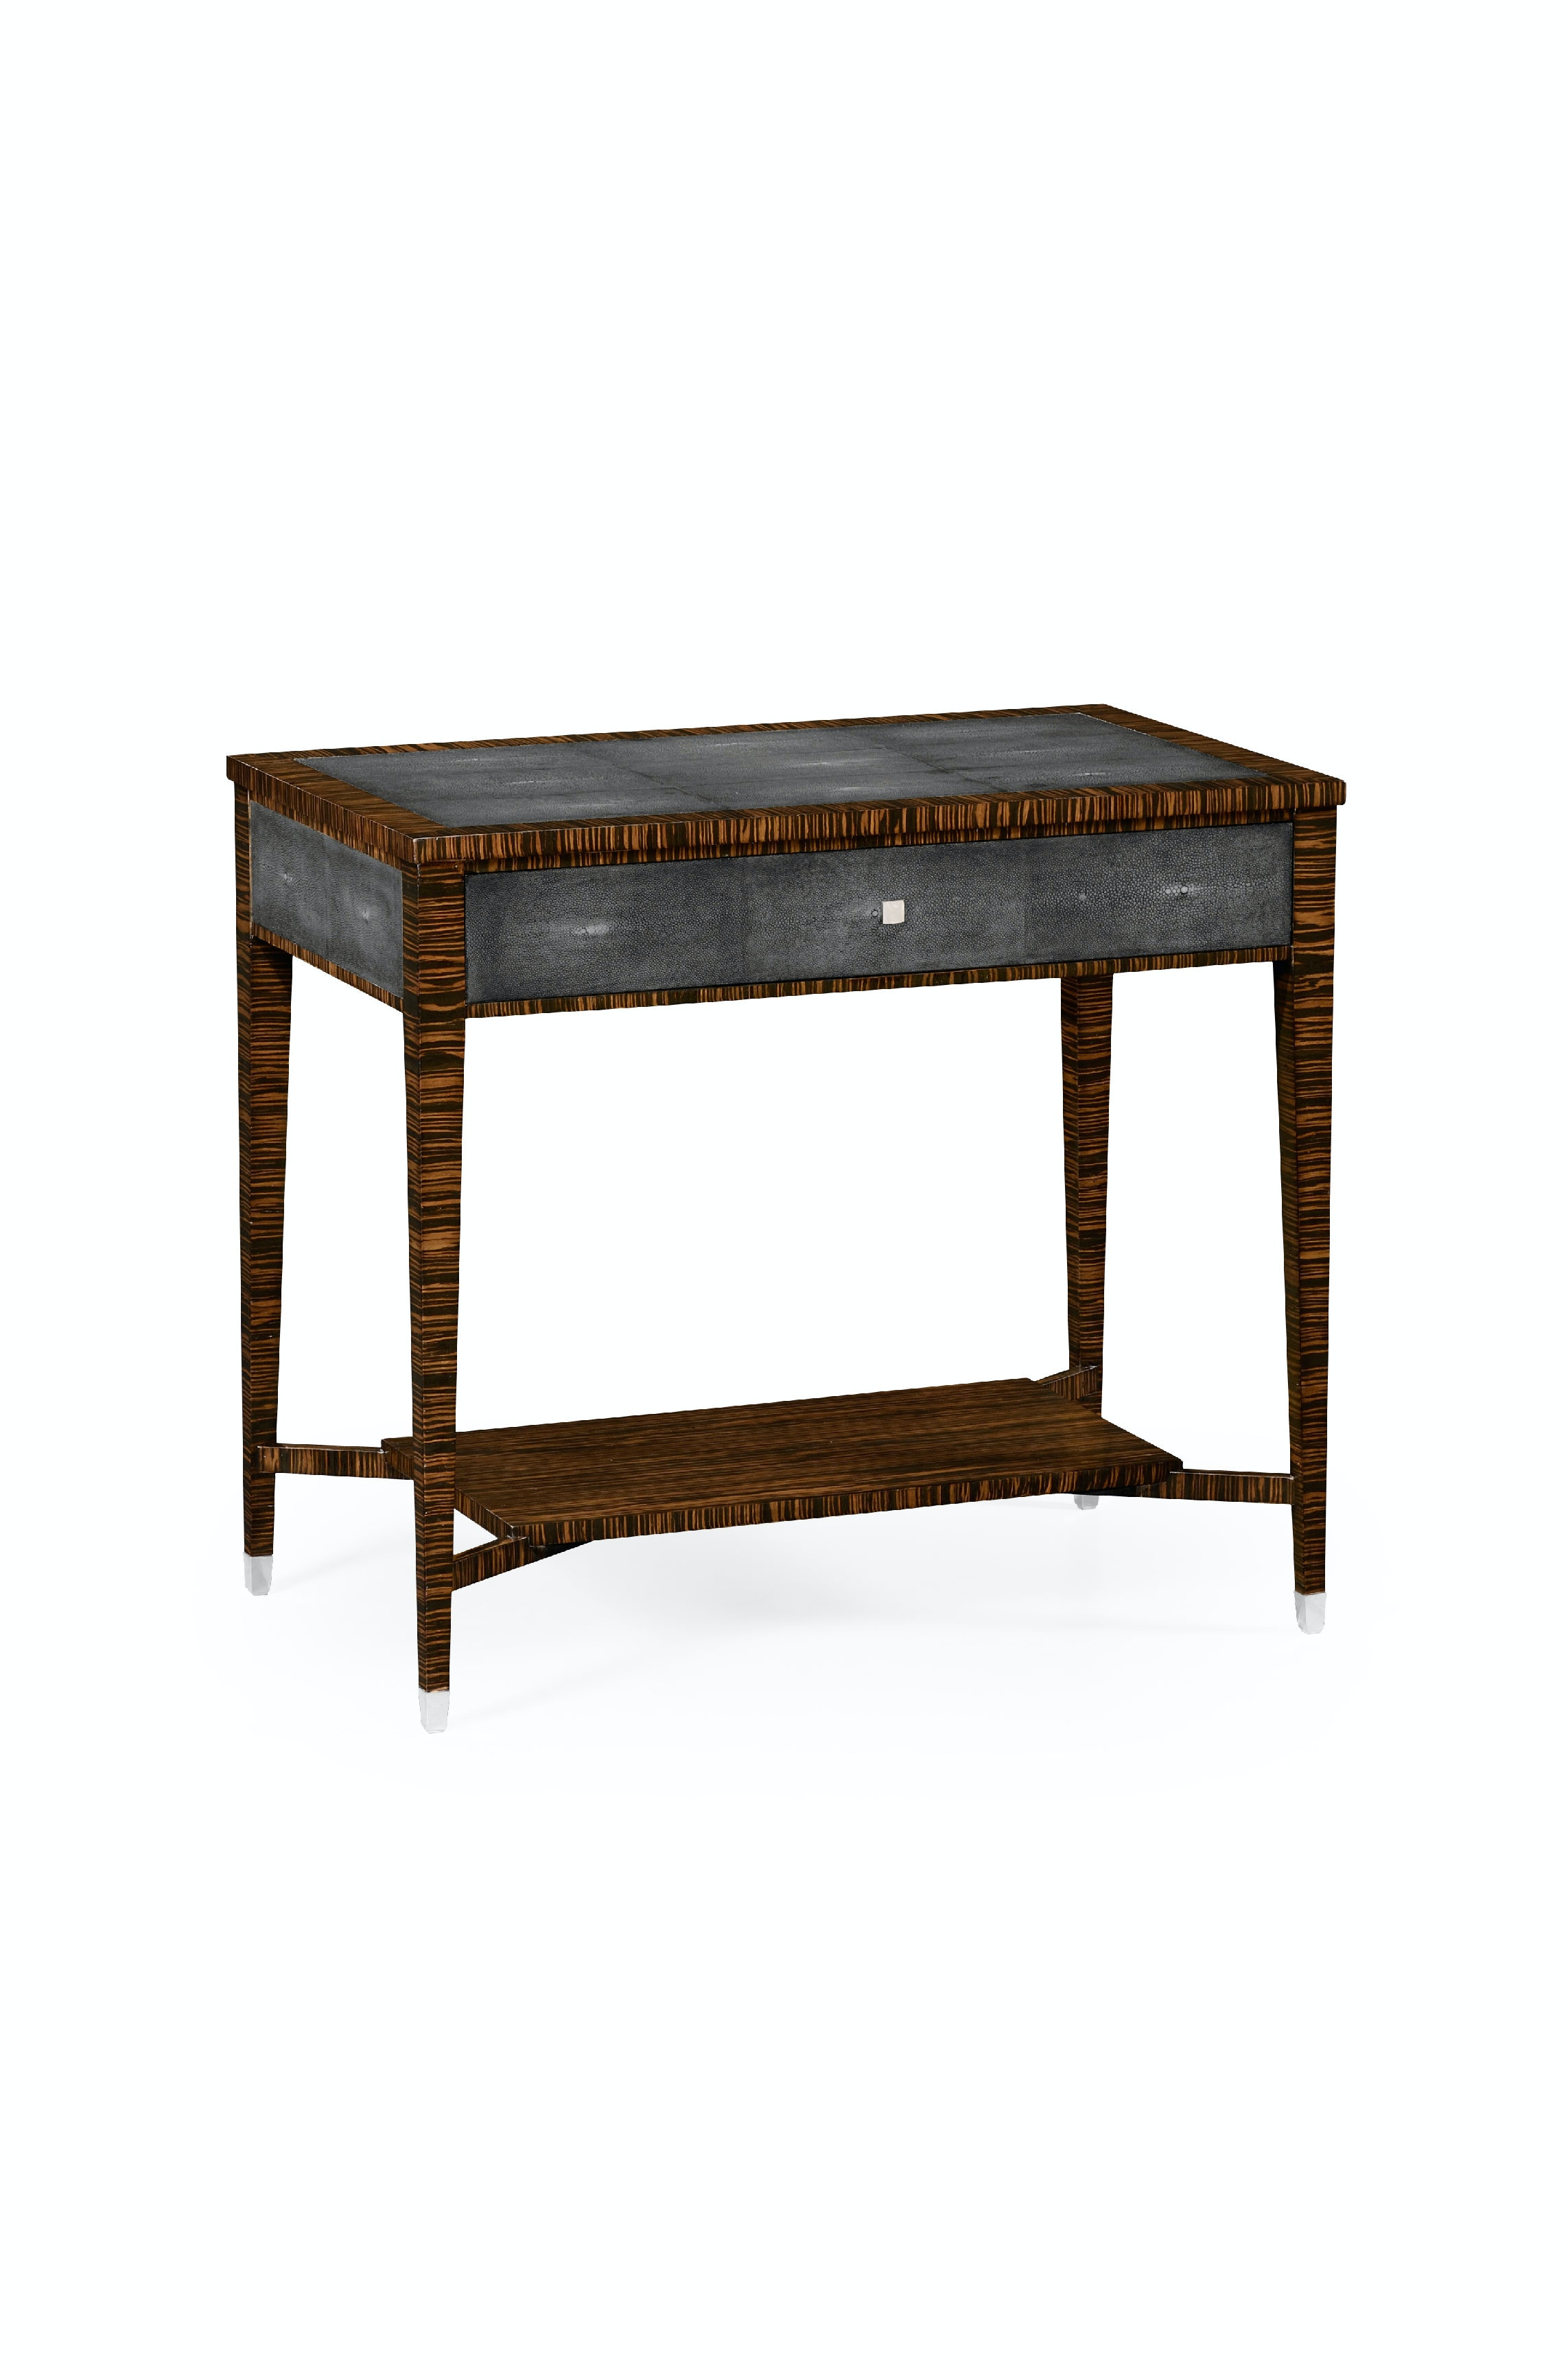 Jonathan Charles Faux Macassar Ebony U0026 Anthracite Shagreen Sofa Table  QJ494356MAS From Walter E. Smithe